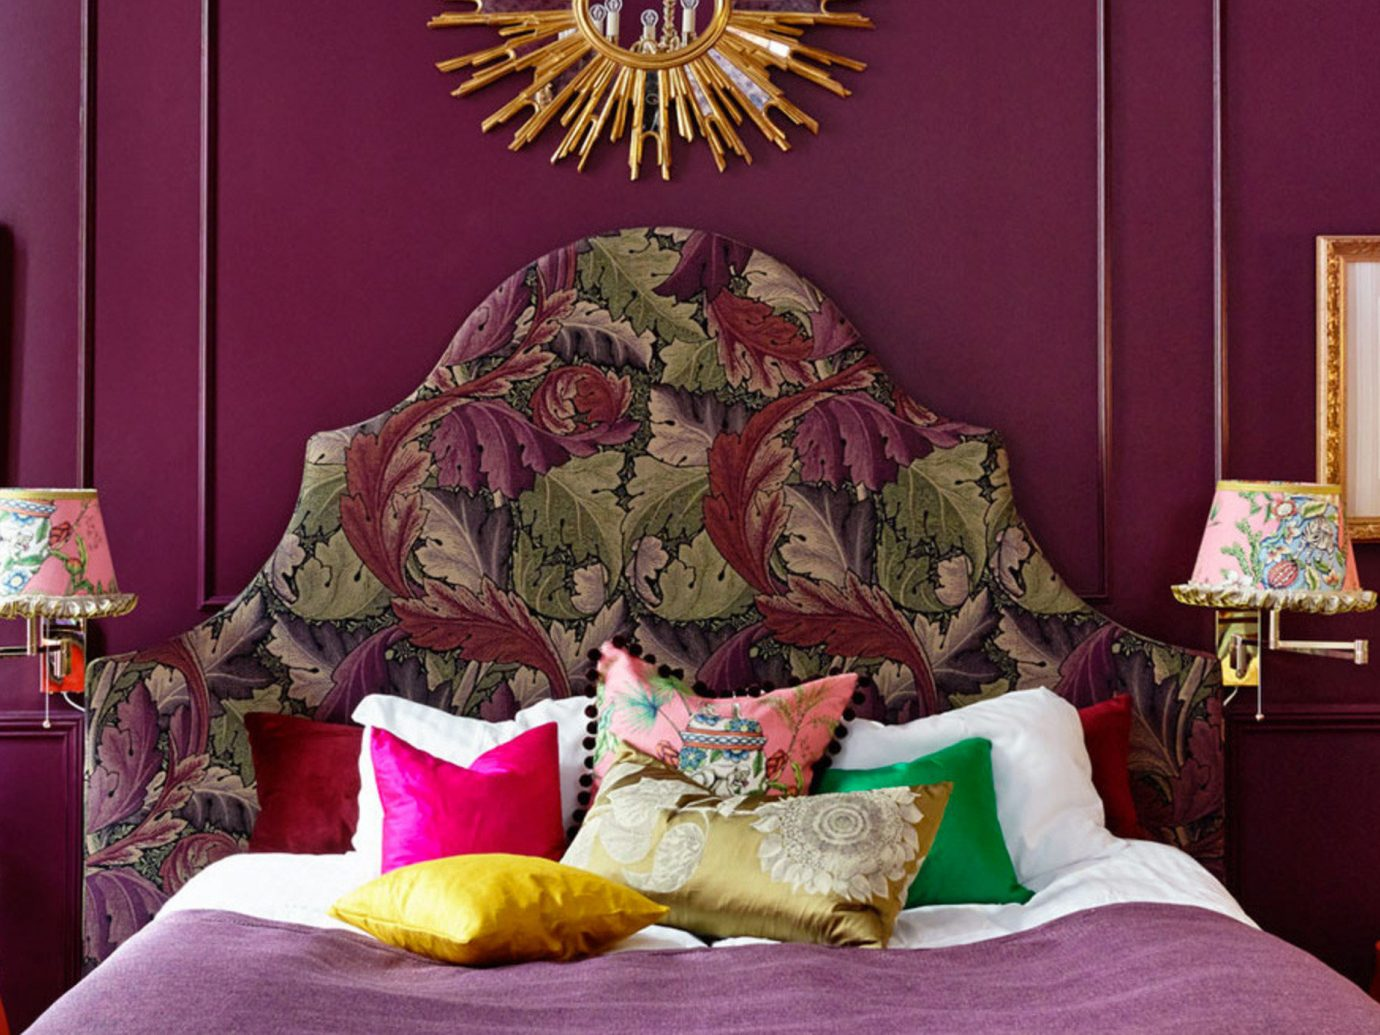 Trip Ideas wall indoor room red living room interior design furniture colorful decorated Bedroom colored bright